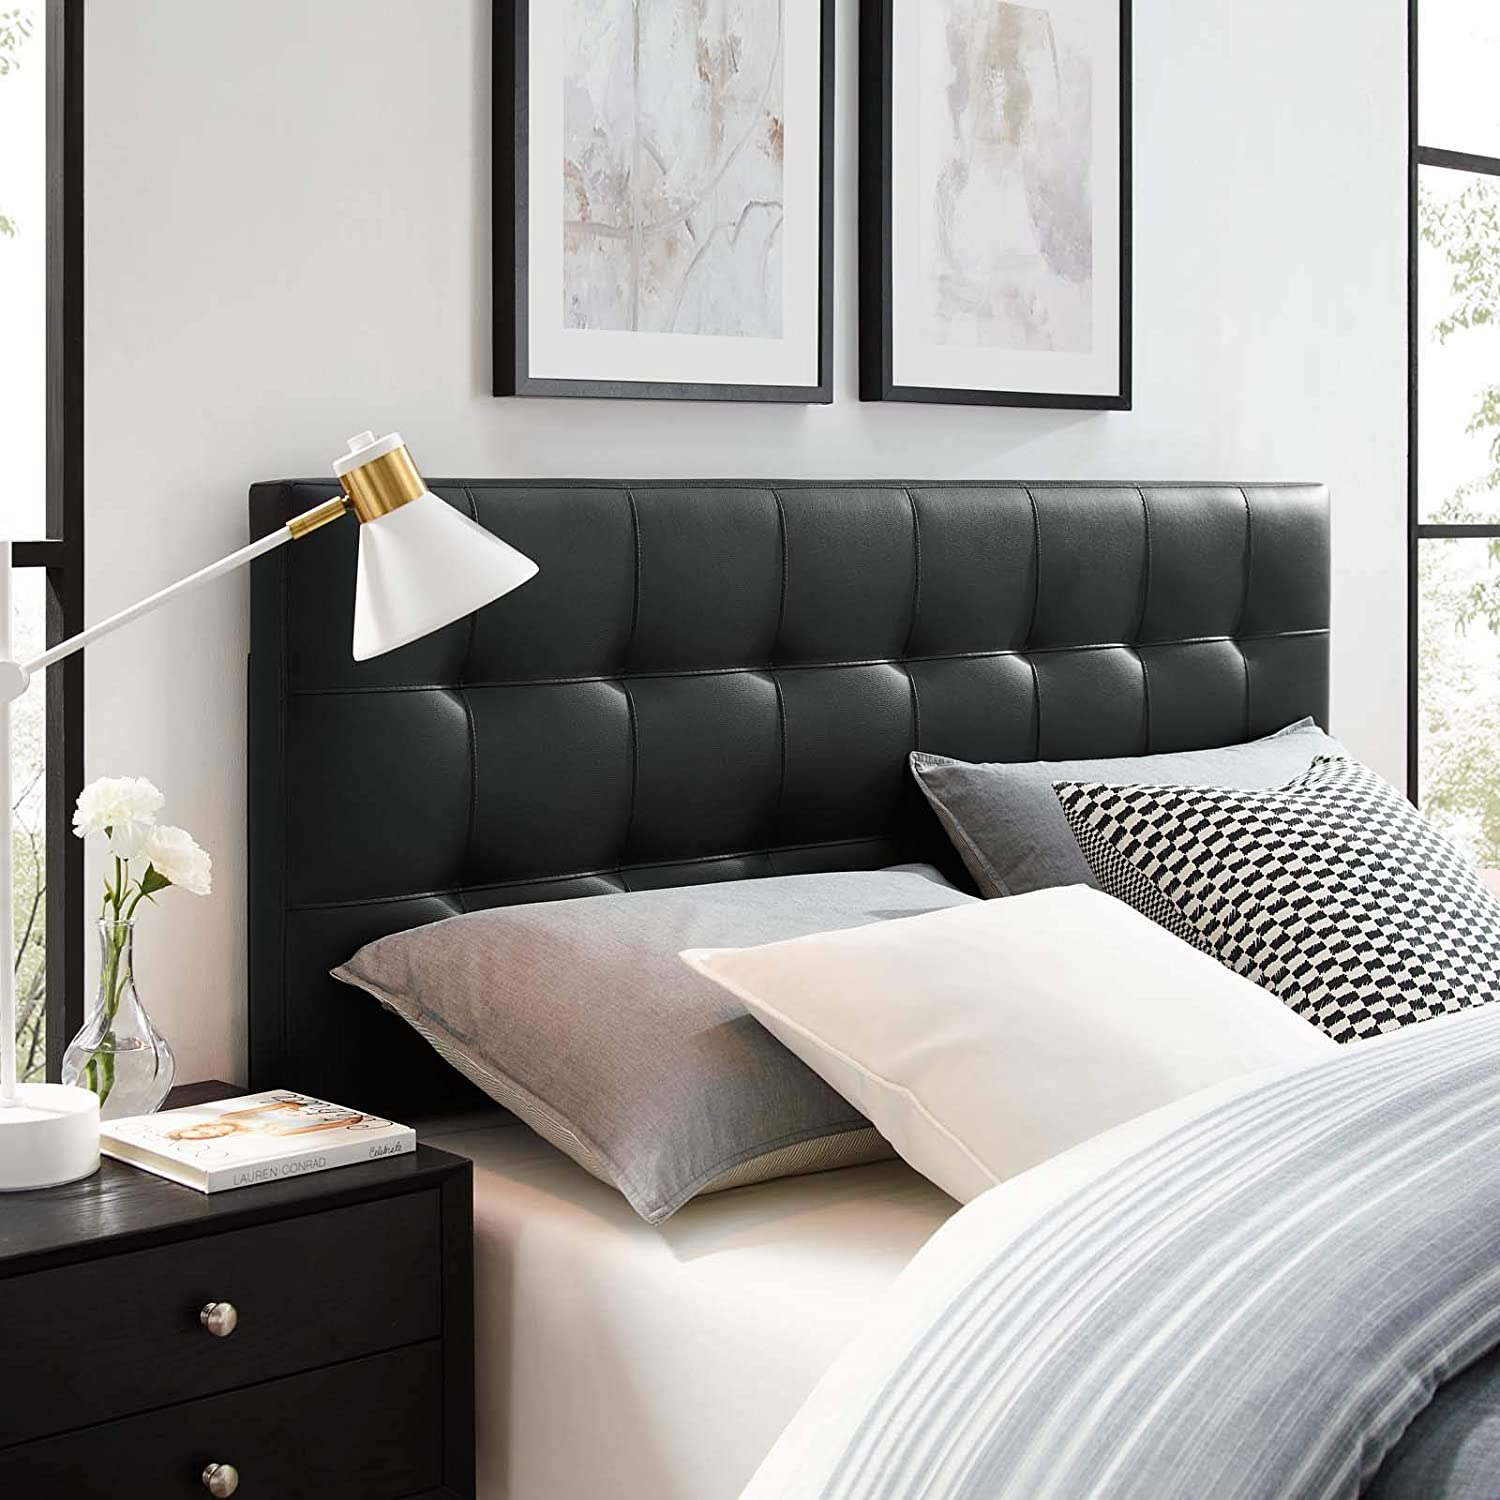 Modway Lily Tufted Faux Leather Upholstered Queen Headboard in Black